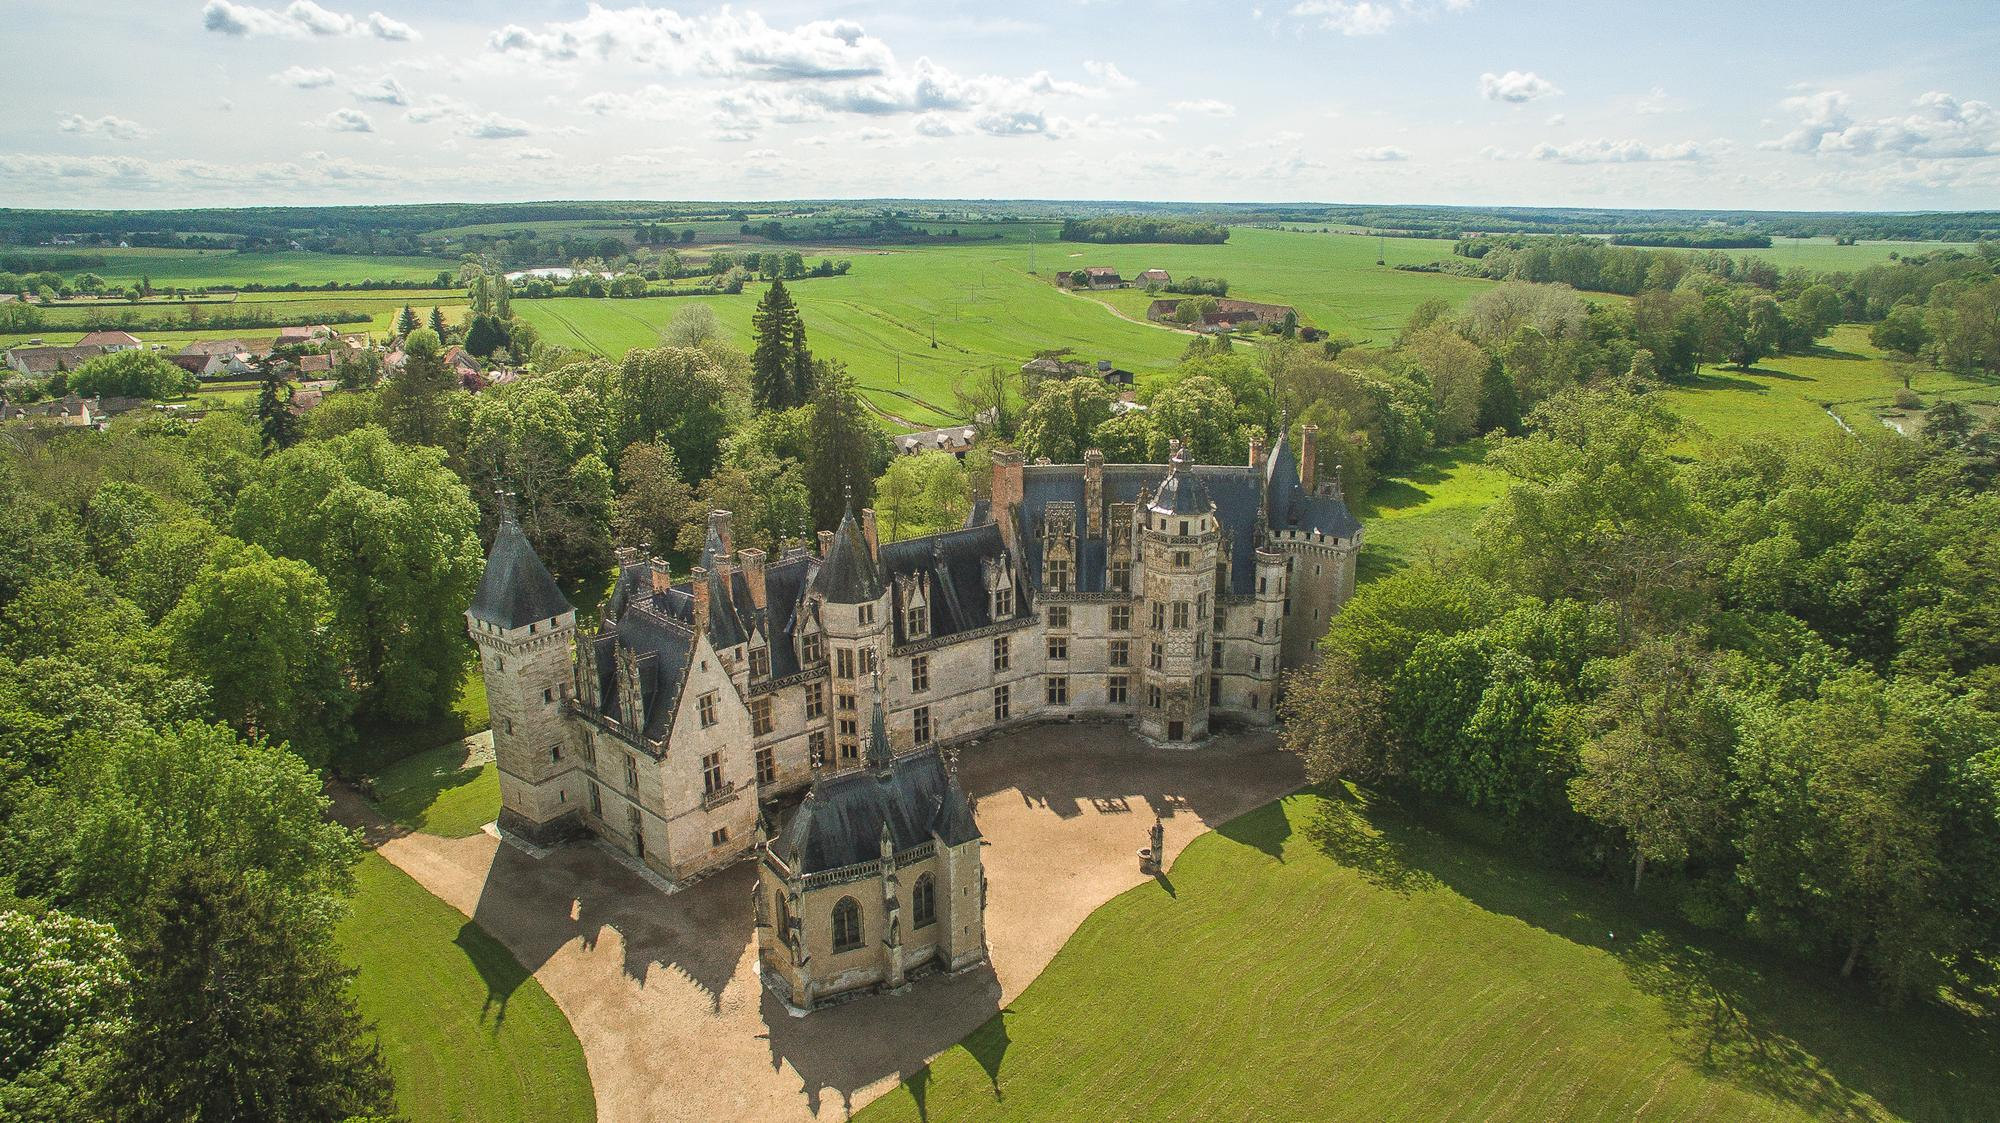 chateau de meillant, le berry, france, patrimoine